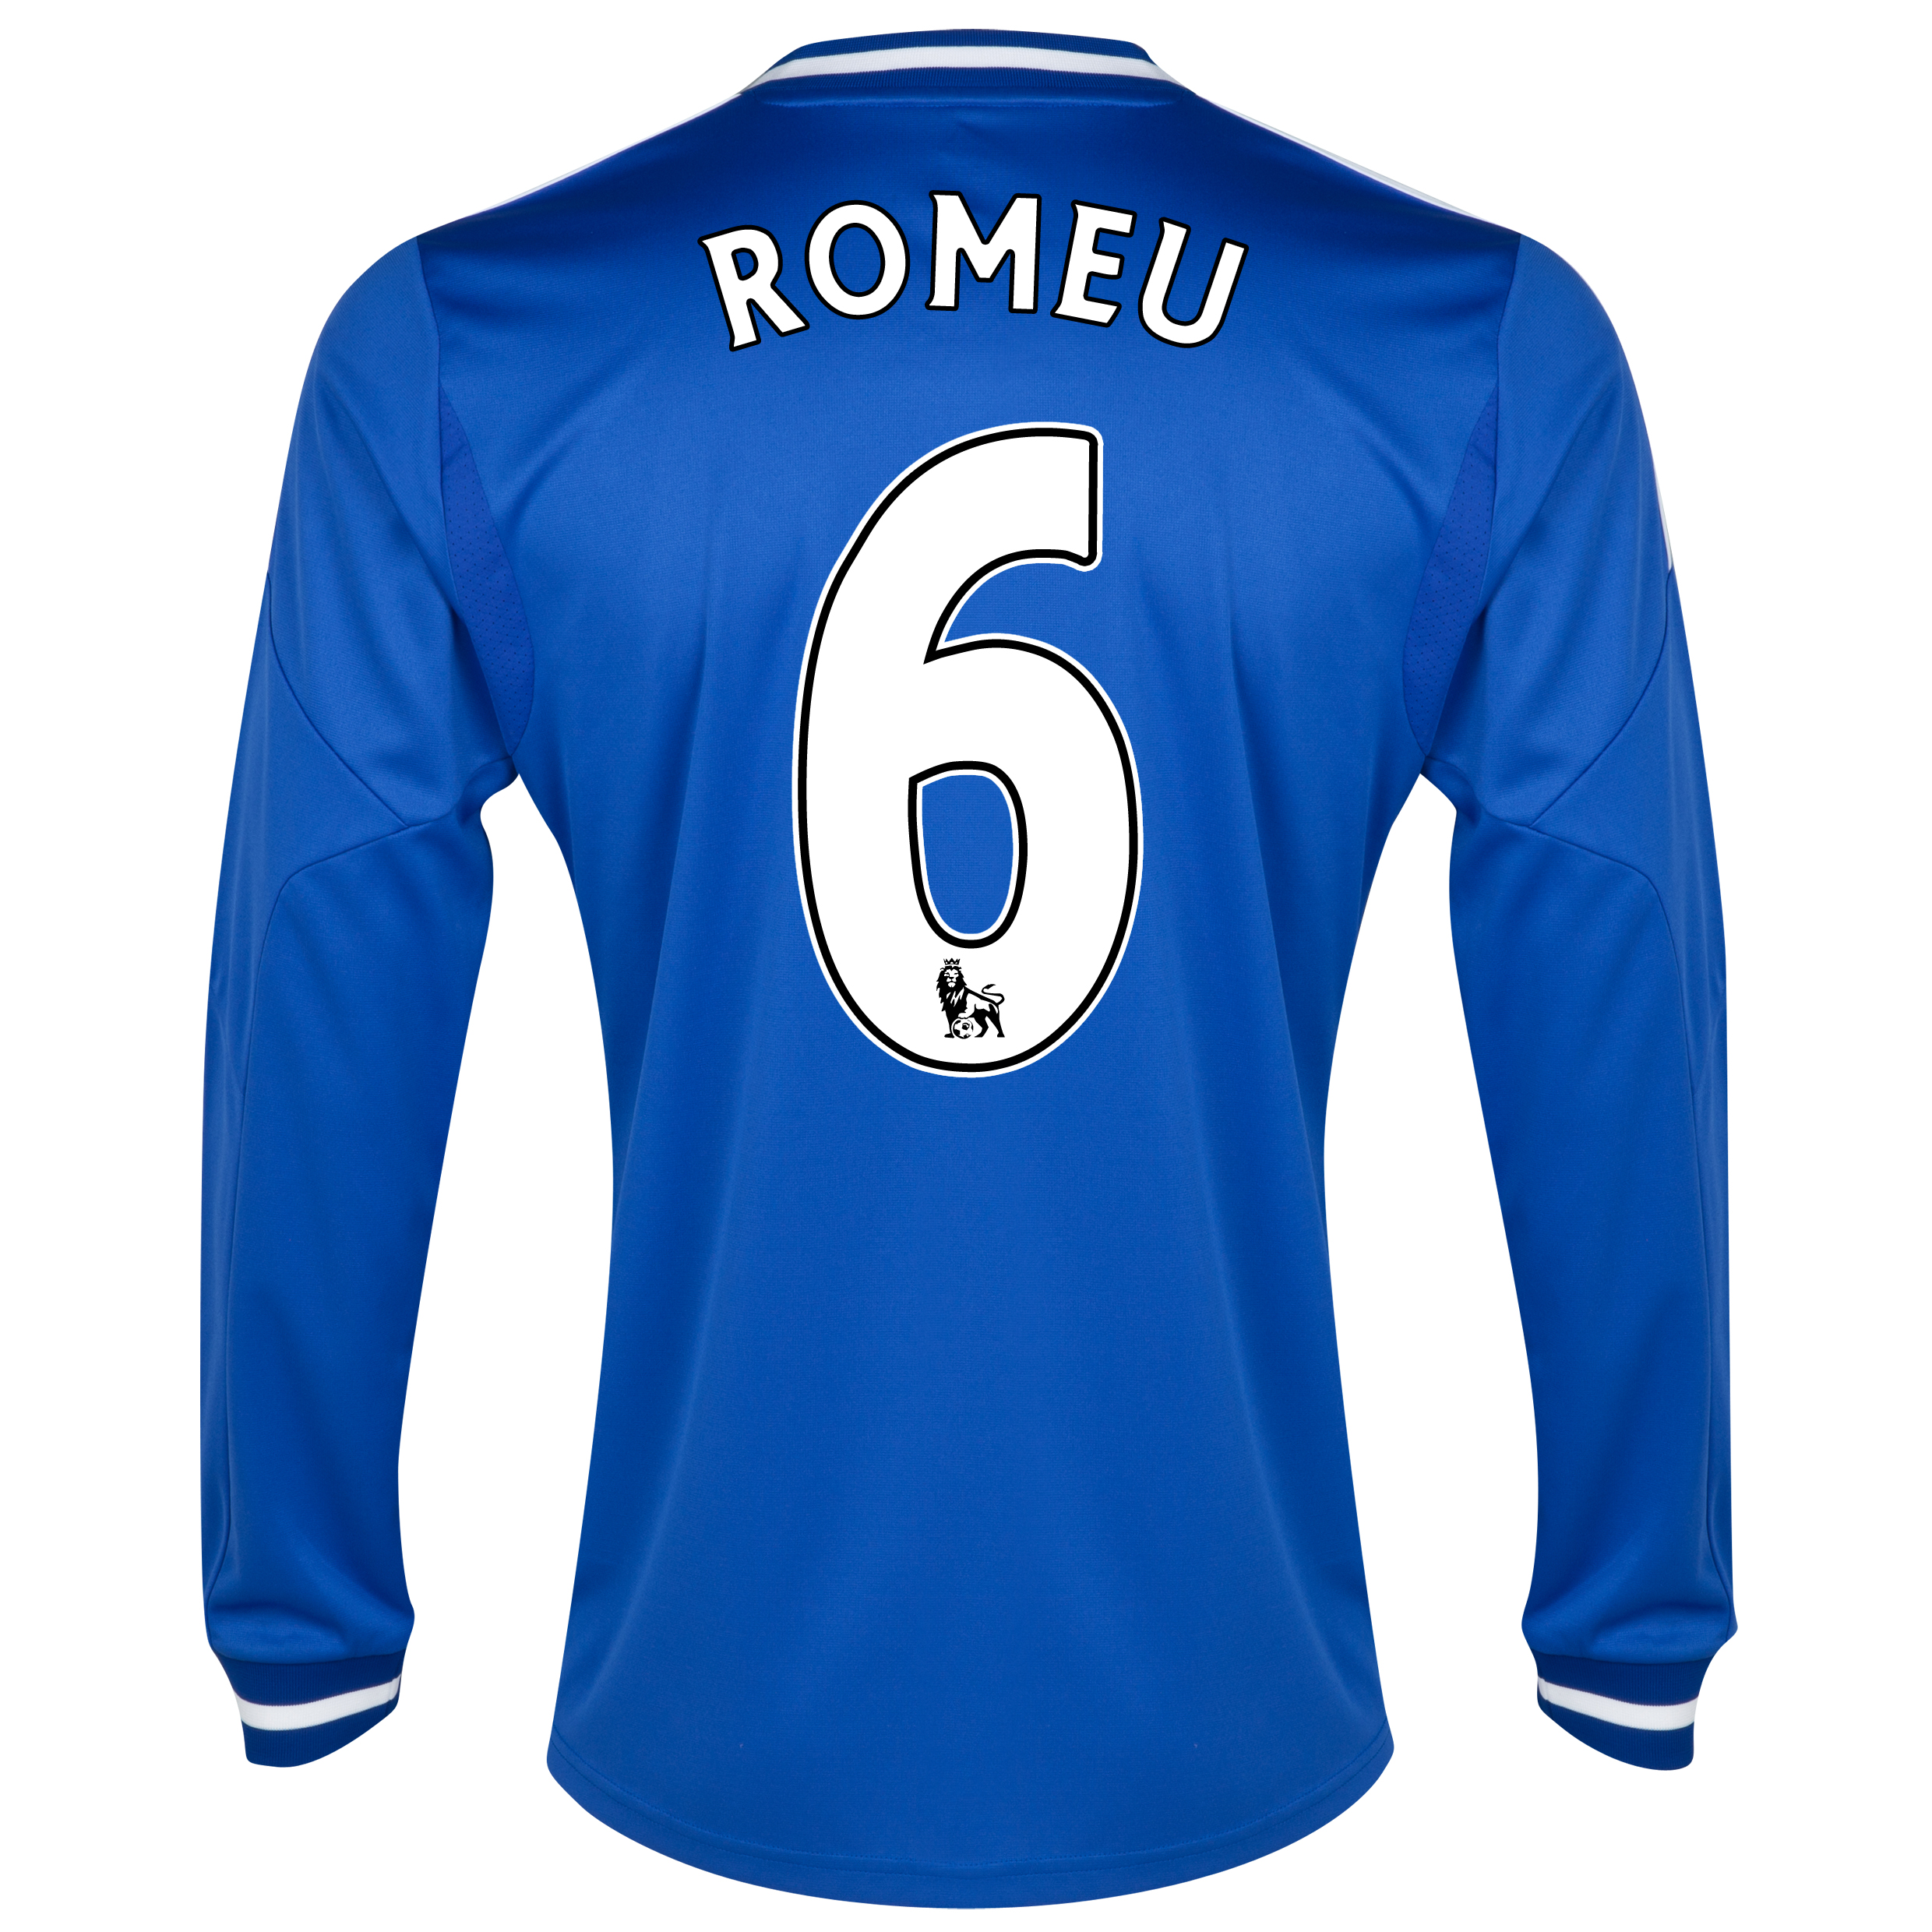 Chelsea Home Shirt 2013/14 - Long Sleeve with Romeu 6 printing